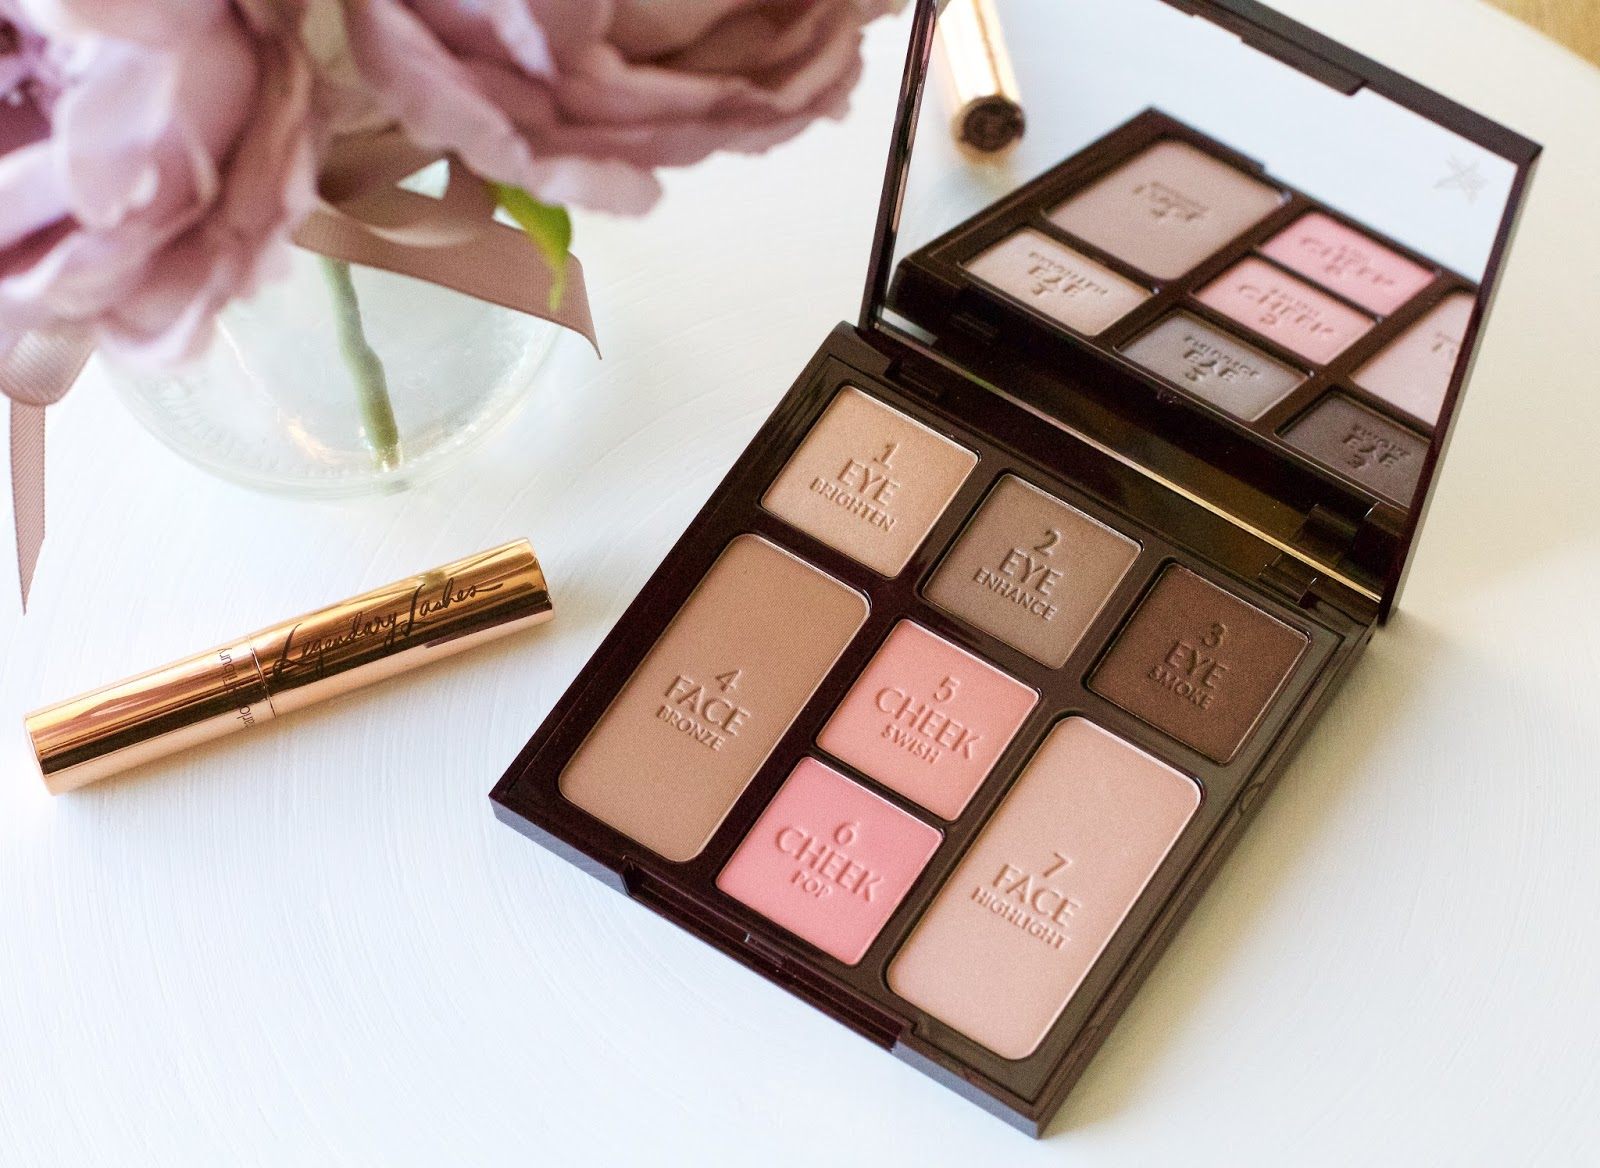 Charlotte Tilbury Instant Look In A Palette & Legendary Lashes Gift Set | The Lifestyle Archives